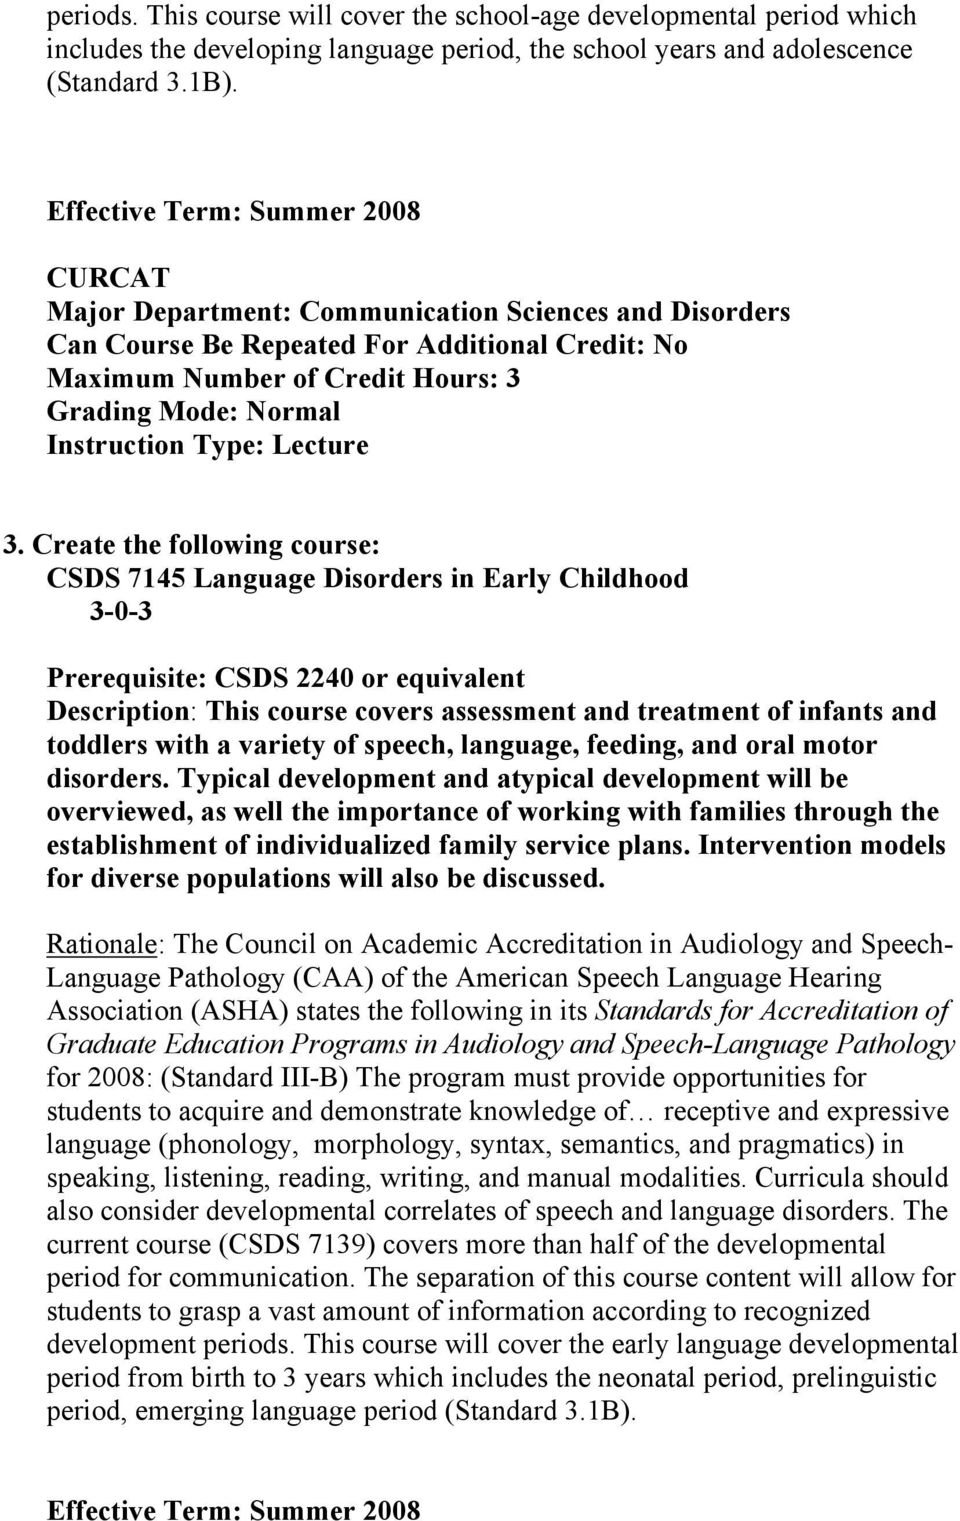 Create the following course: CSDS 7145 Language Disorders in Early Childhood Prerequisite: CSDS 2240 or equivalent Description: This course covers assessment and treatment of infants and toddlers